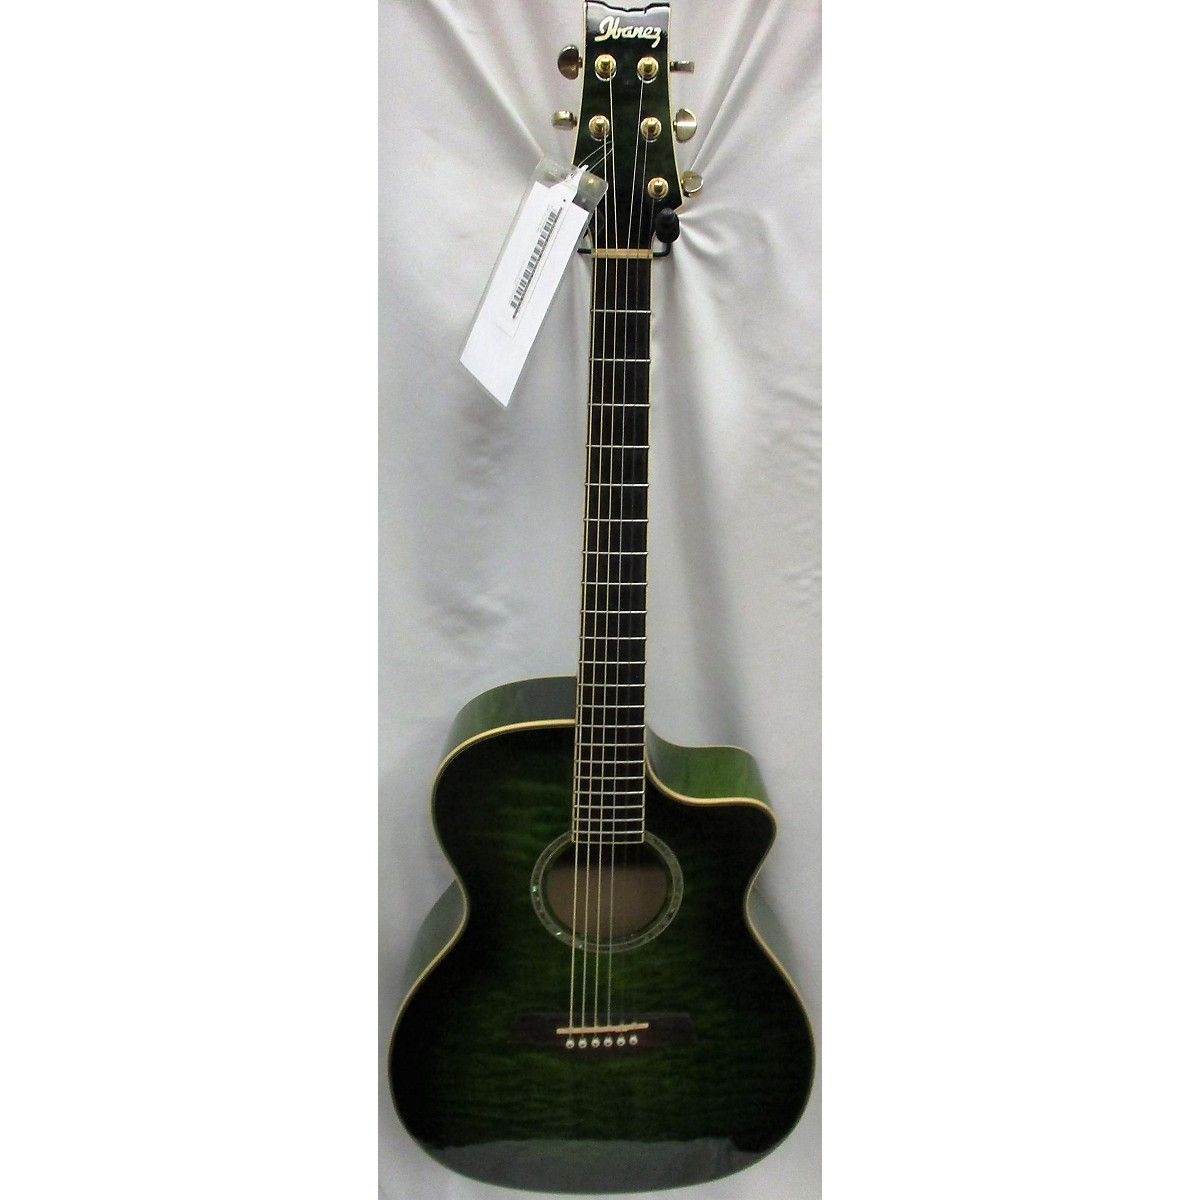 Used Ibanez A300e Acoustic Electric Guitar Emerald Green Guitar Center Acoustic Electric Guitar Acoustic Electric Guitar